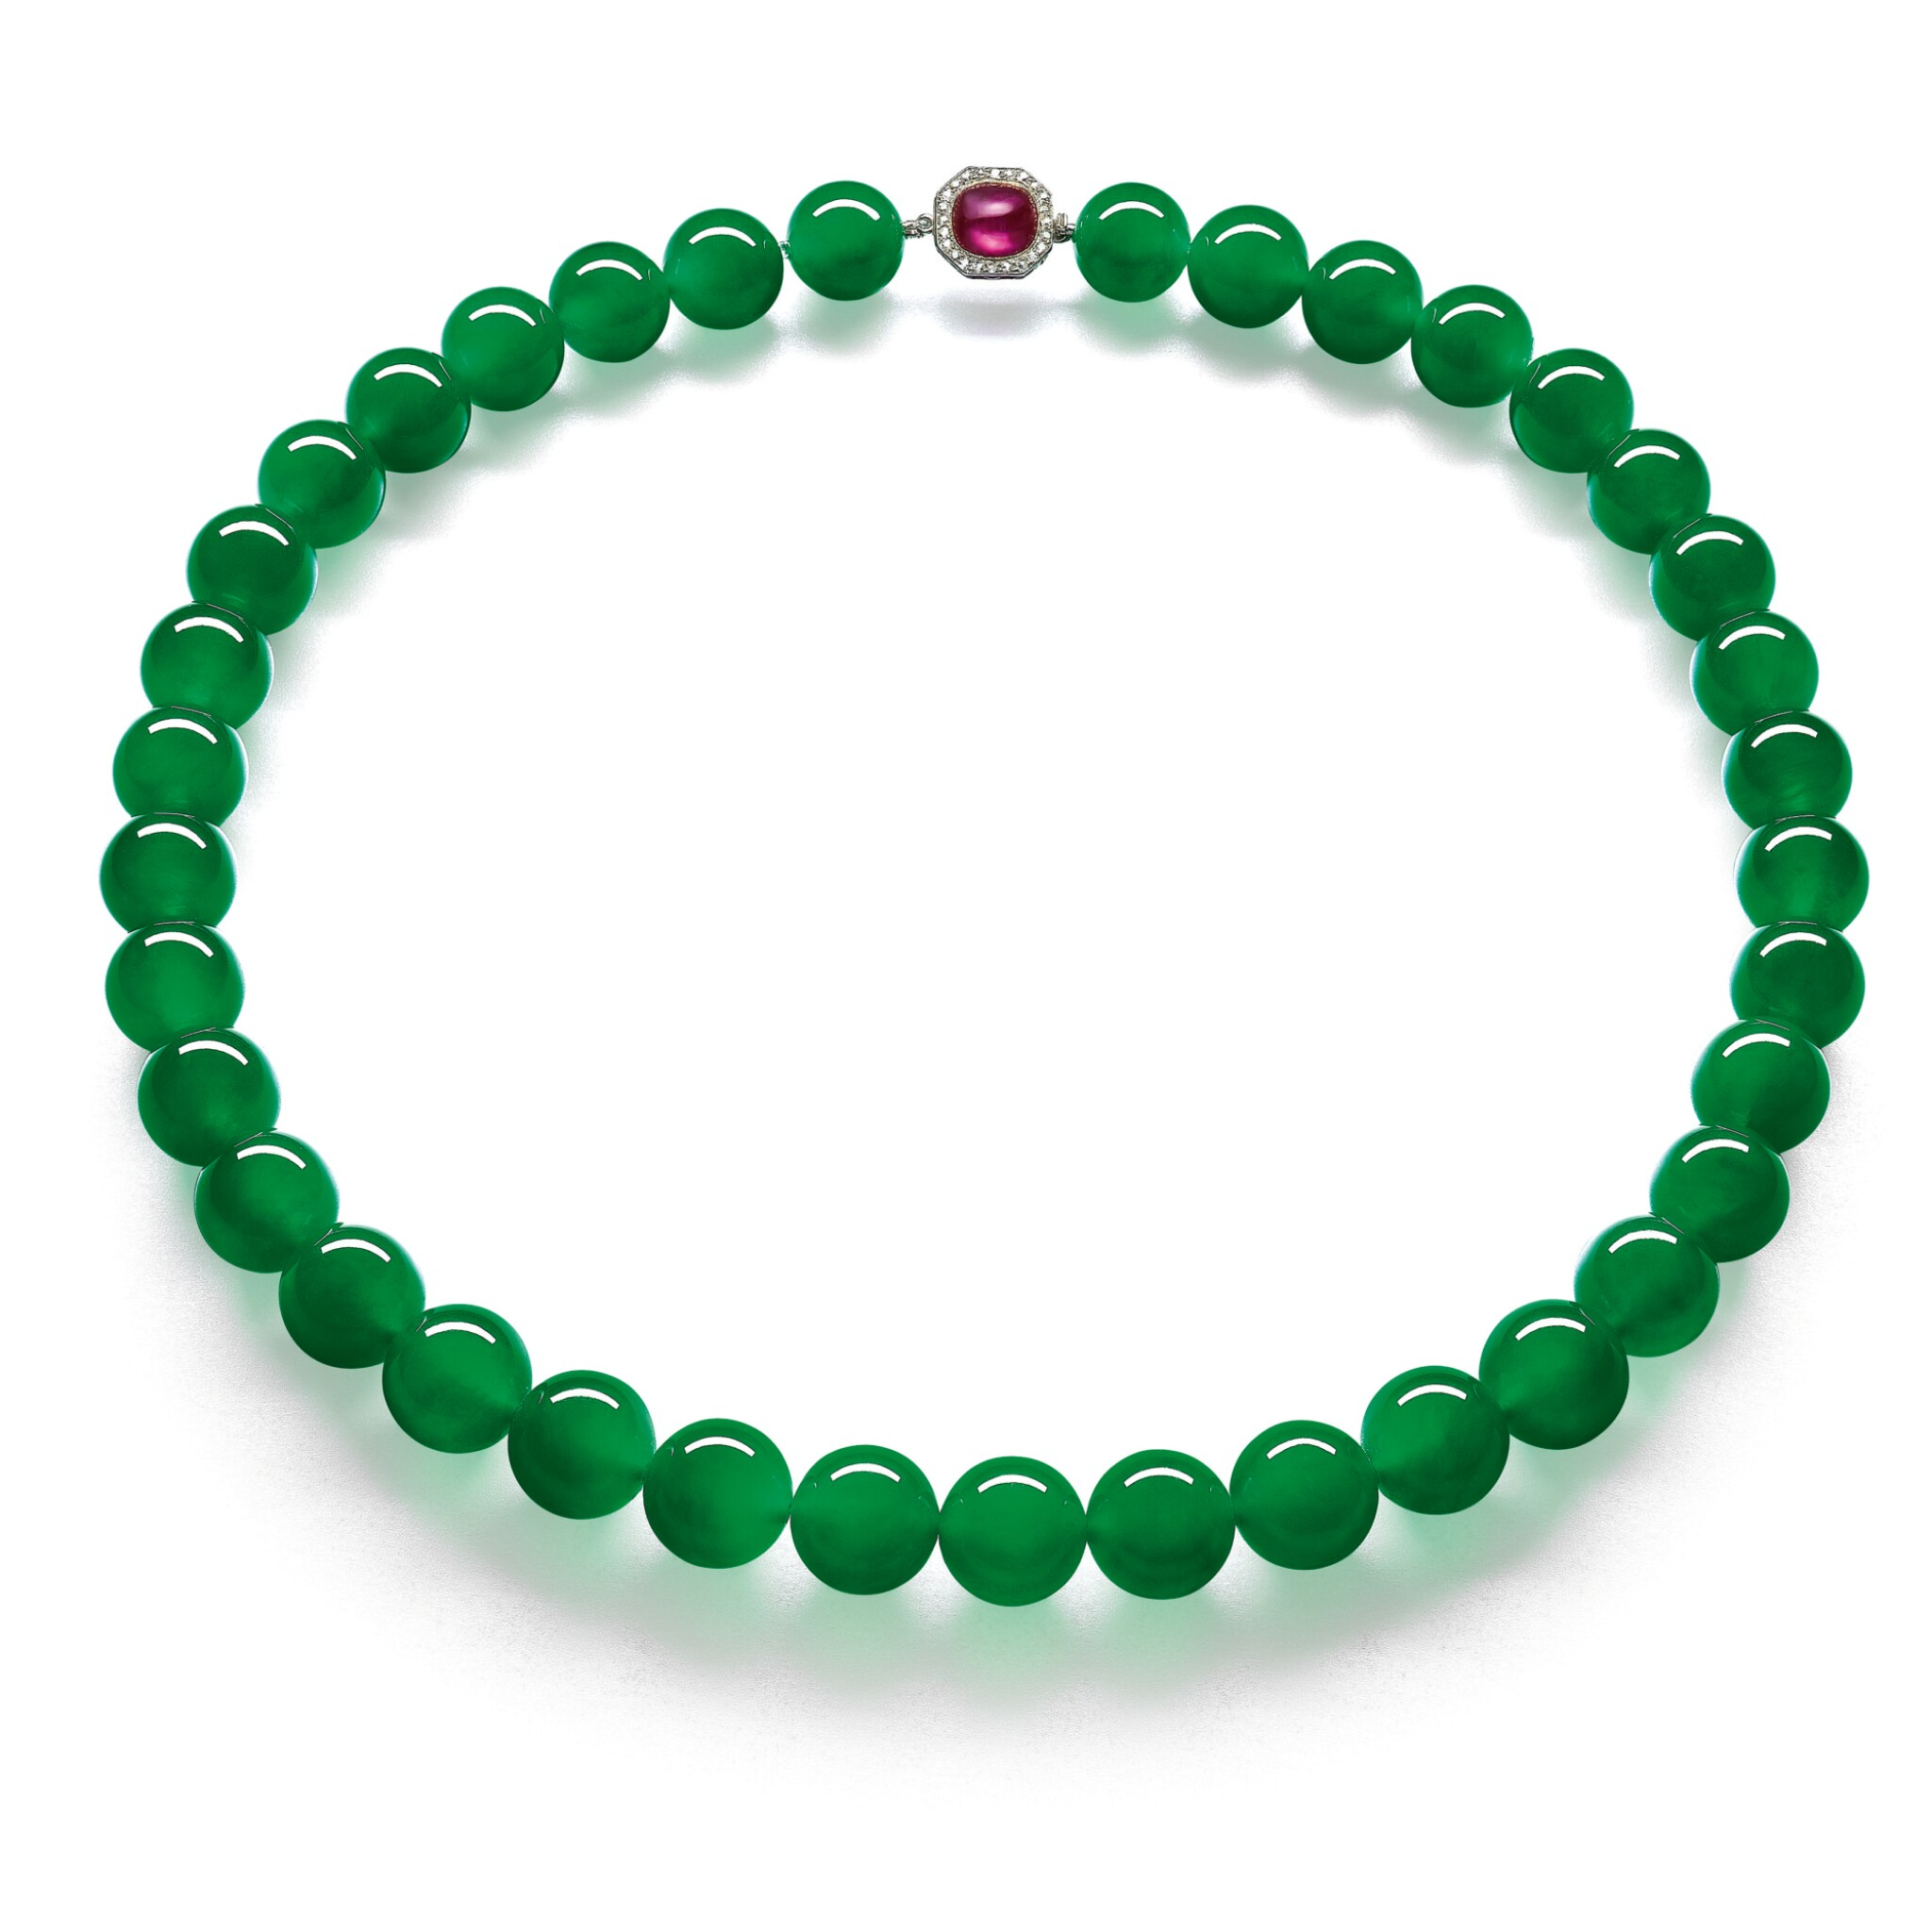 View 1 of Lot 1808. AN EXTRAORDINARY 'IMPERIAL JADE' JADEITE BEAD, RUBY AND DIAMOND NECKLACE  超凡極品「帝王玉」天然翡翠珠 配 紅寶石 及 鑽石 項鏈.